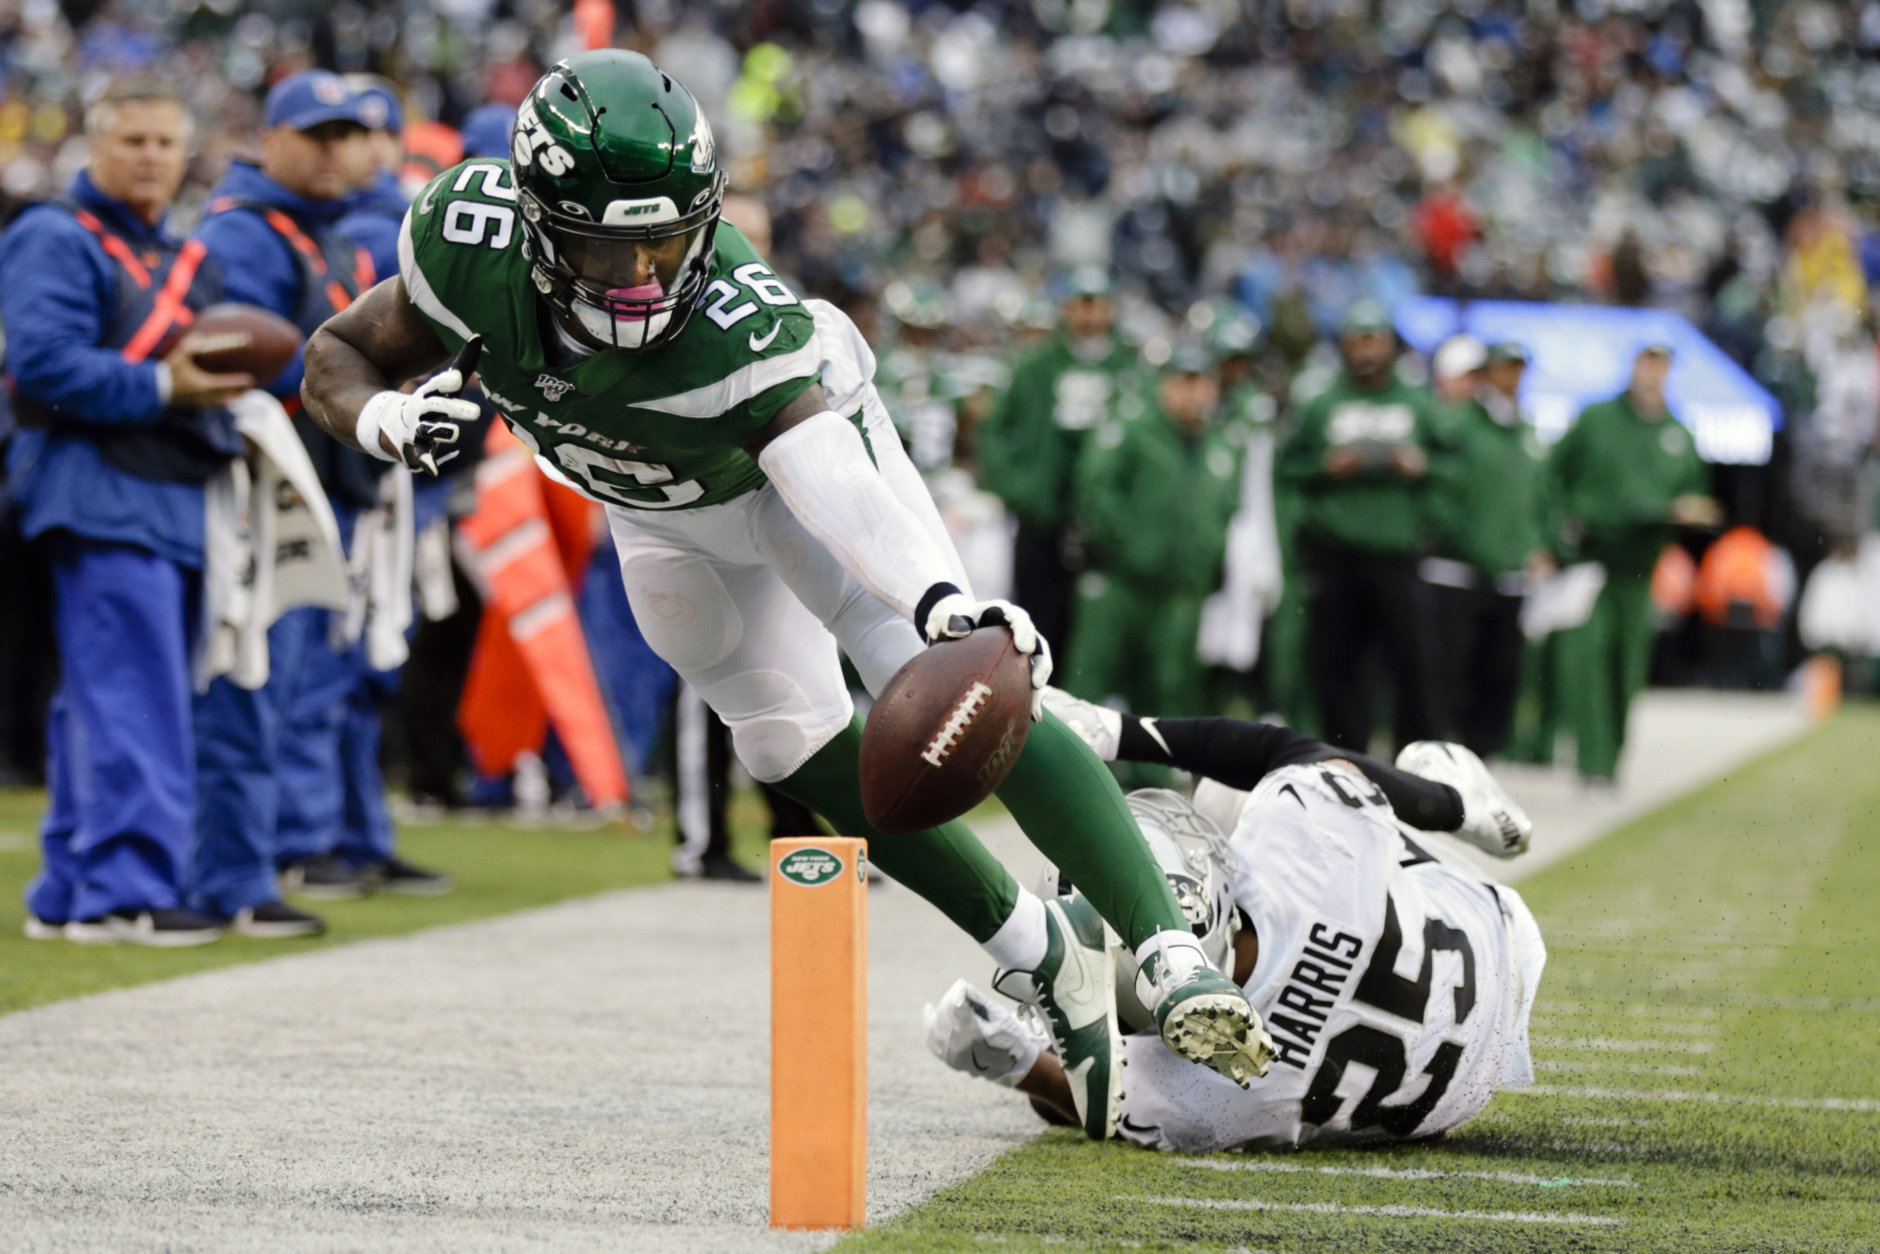 <p><b><i>Raiders 3</i></b><br /> <b><i>Jets 34</i></b></p> <p>The Jets have held 30-point leads in back-to-back games for the first time in franchise history, and are unlikely winners of three straight games after scoring 34 in each of them. It&#8217;s too late to catch the Patriots and Bills in the division, but a .500 finish for Gang Green could inspire some confidence a healthier Jets roster in 2020 could do some damage.</p>